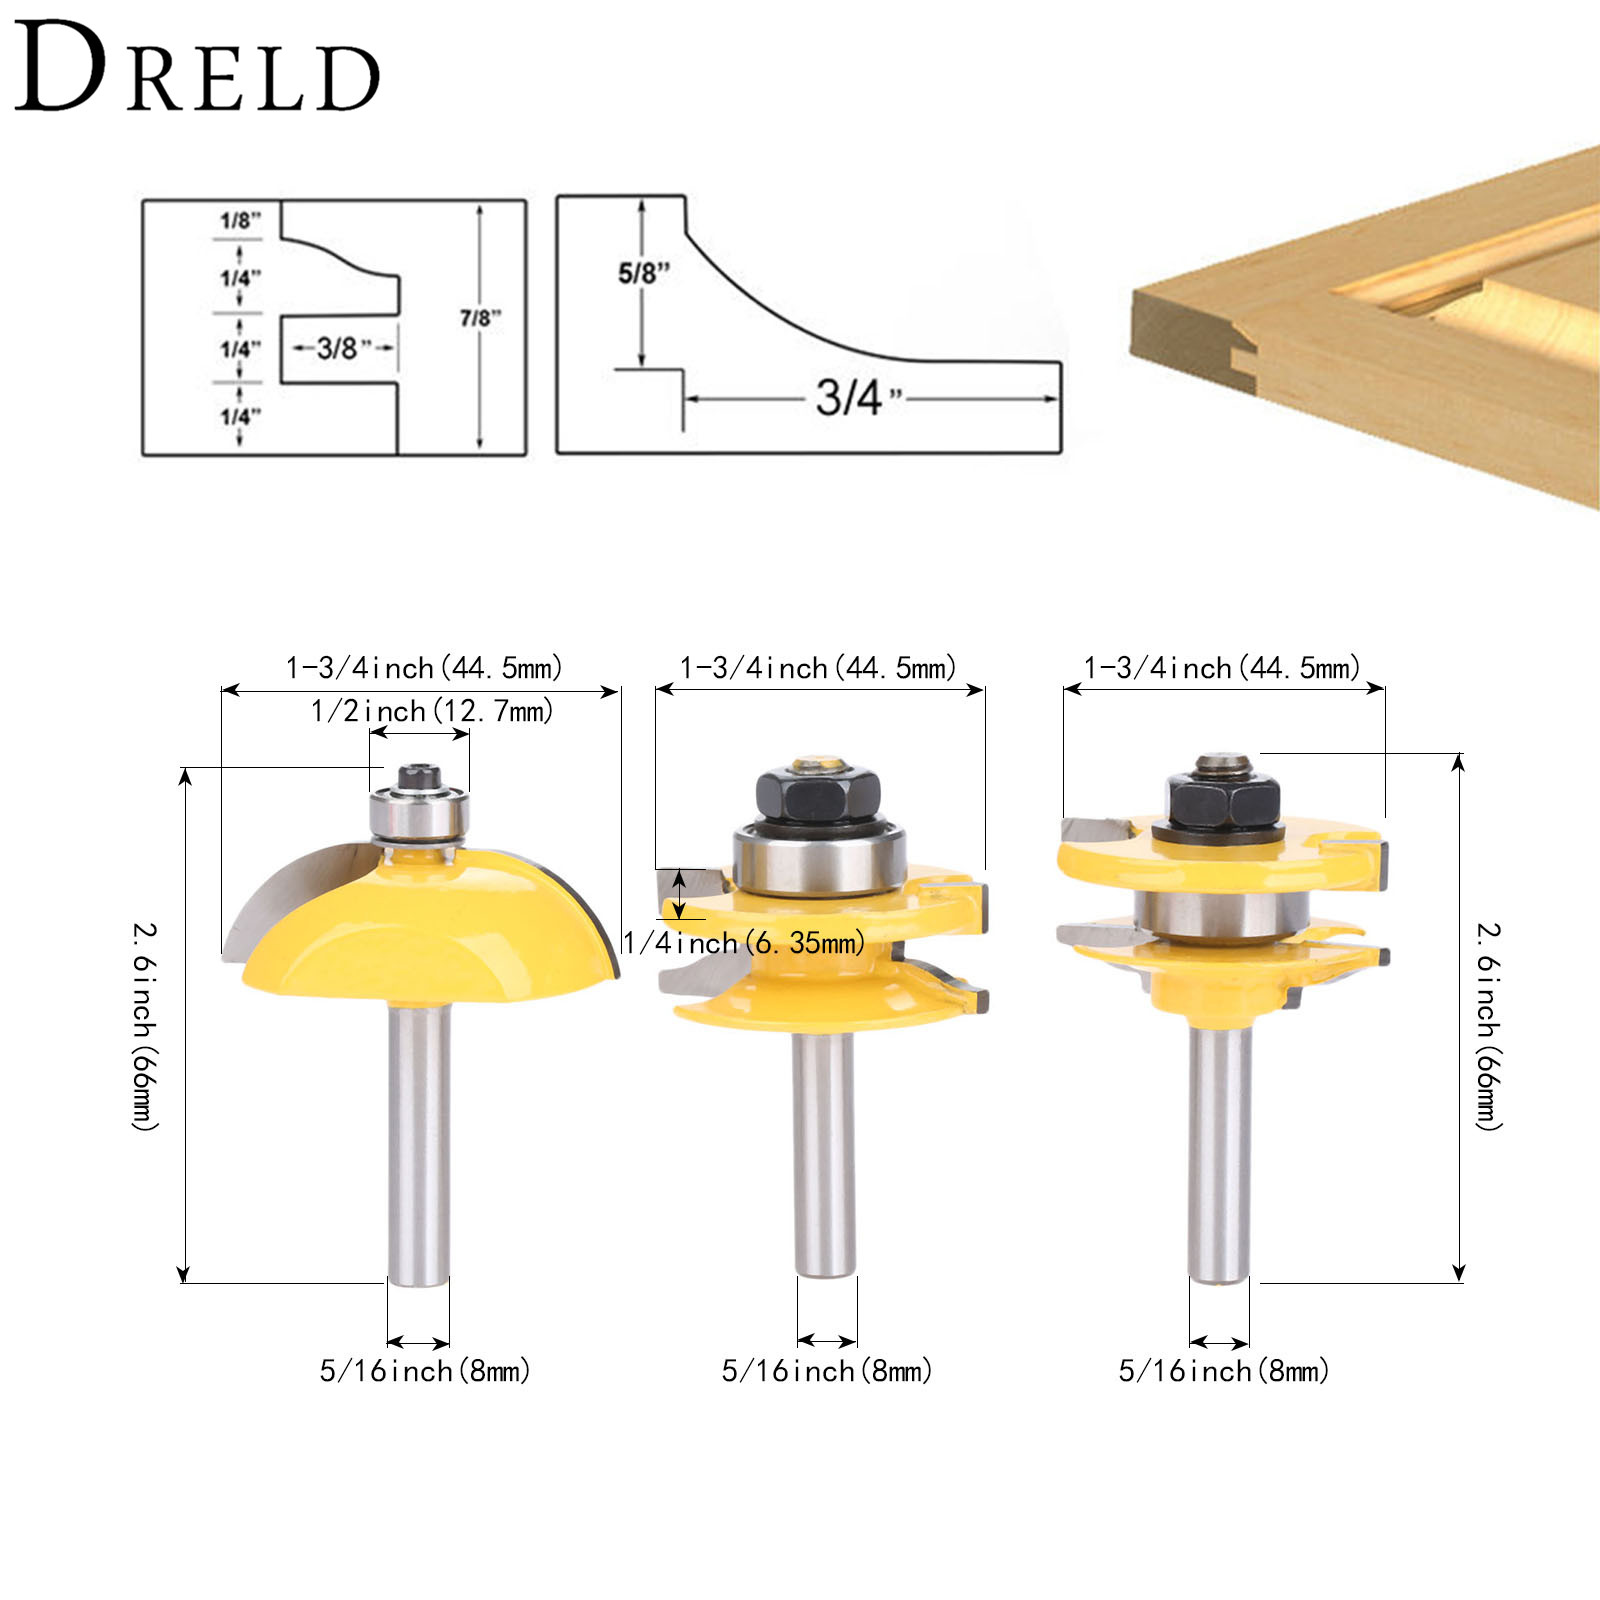 DRELD 3pcs 8mm Shank Engraving Milling Cutter Woodworking Tools Raised Panel Cabinet Door Router Bit Set Wood Cutter Door Knife 3 8mm woodworking tools round carving bit router bit milling cutter for engraving woodcarving